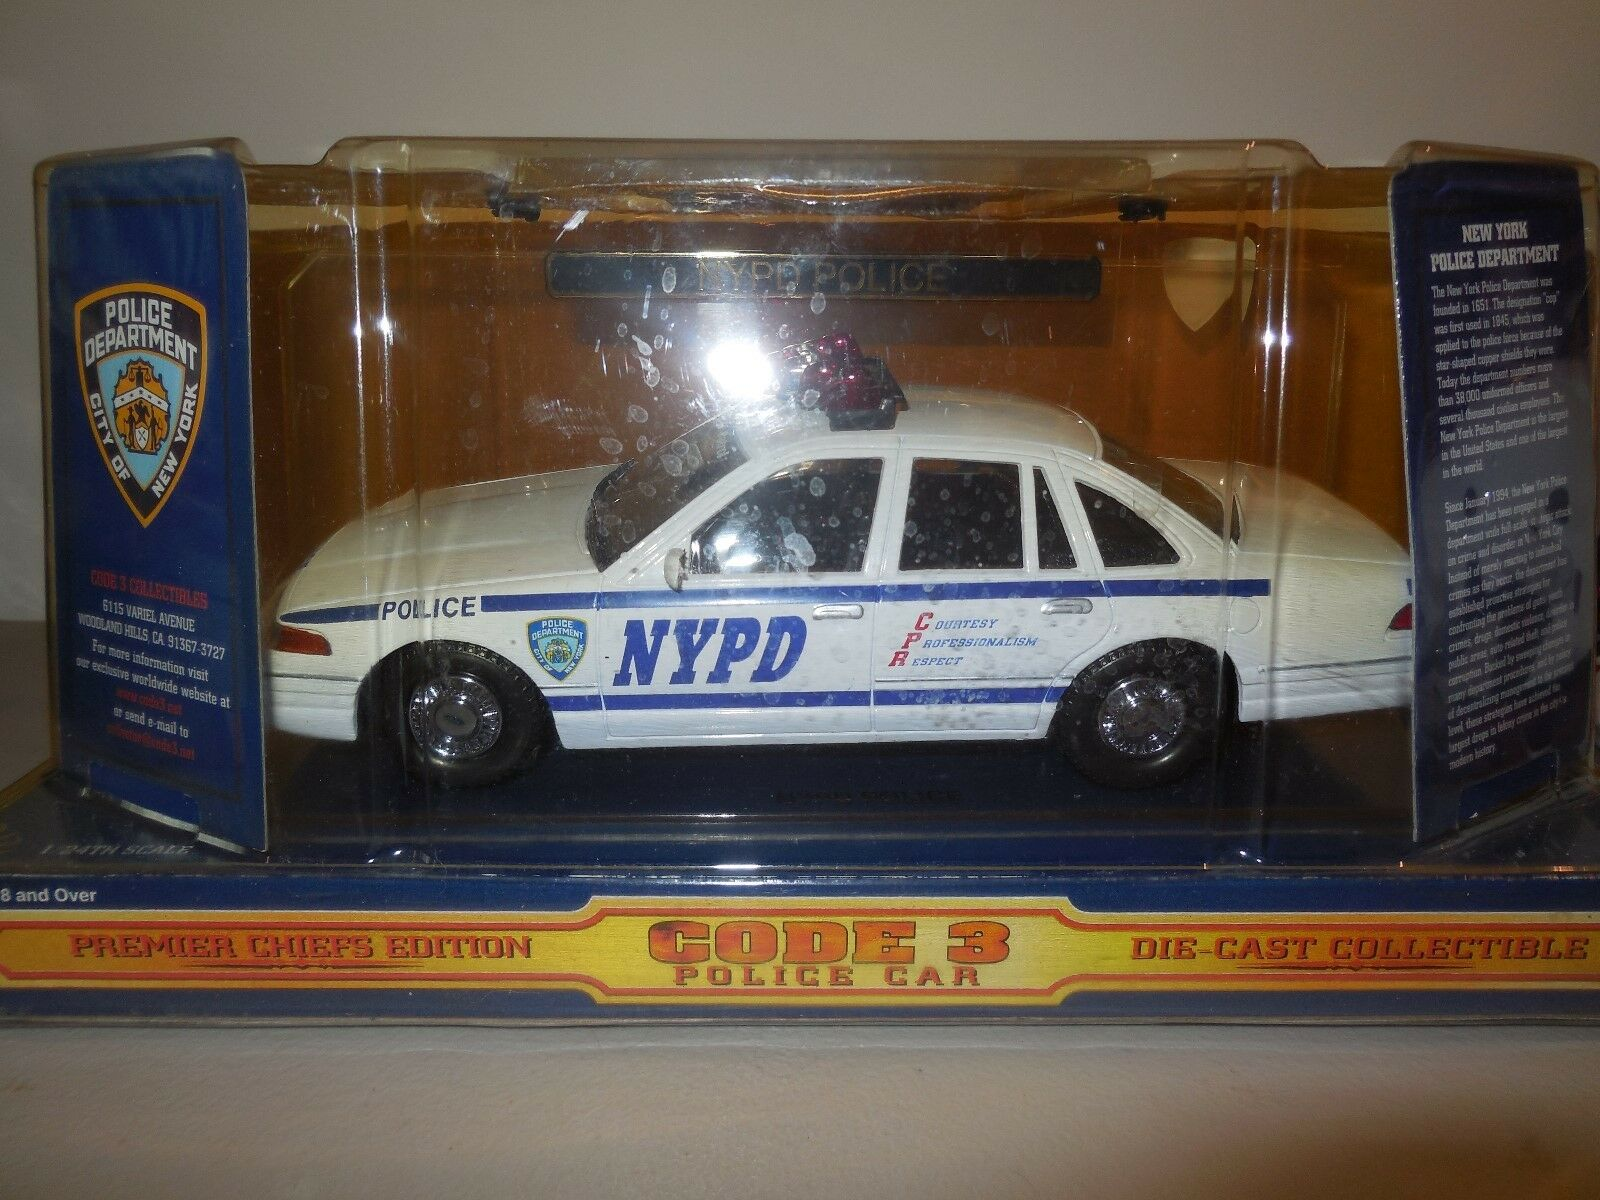 Nypd code 3 police car with patch patch patch ford crown victoria 40cfdb